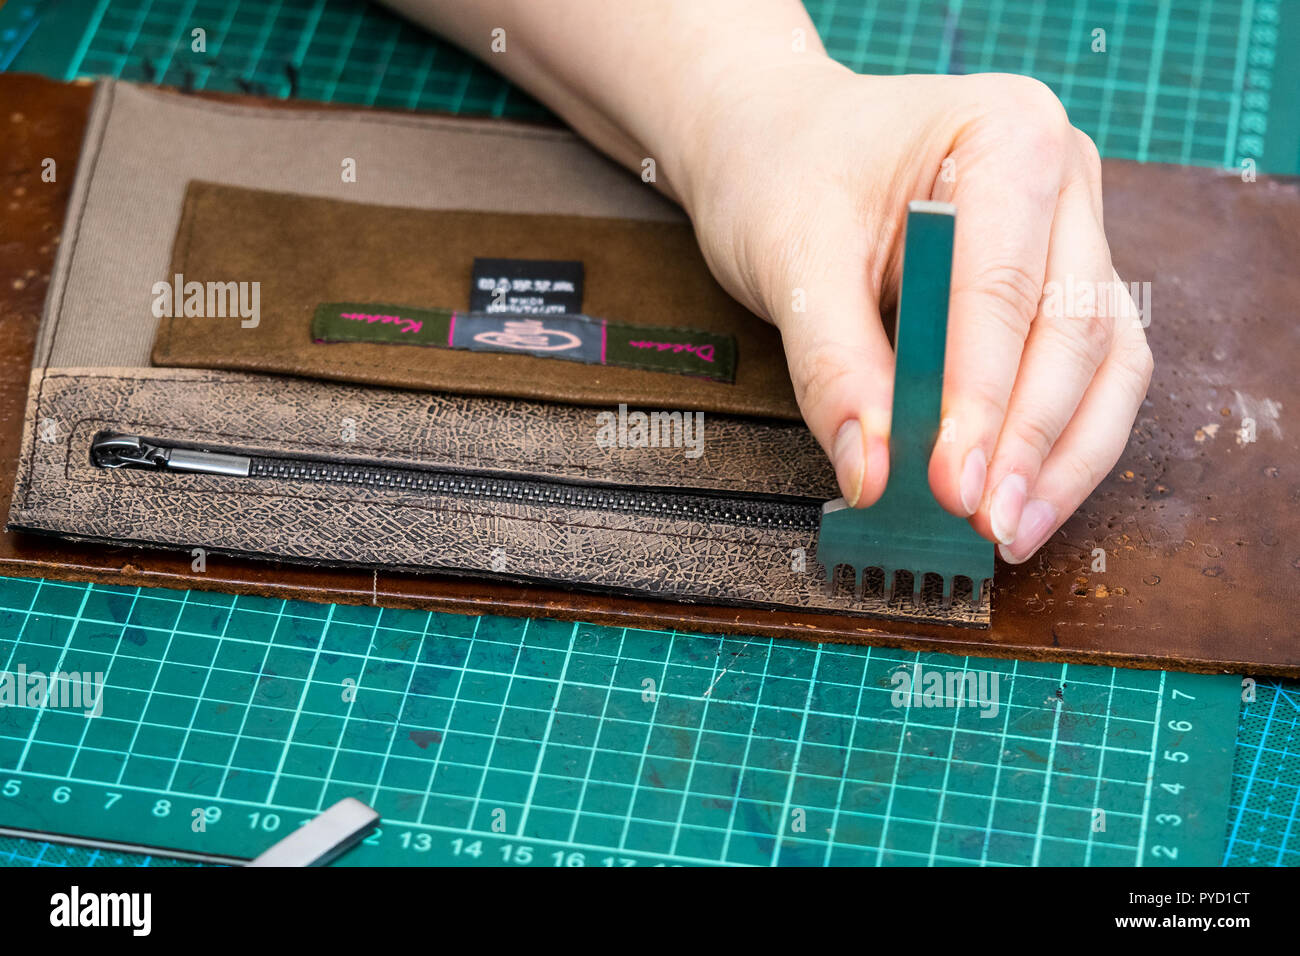 workshop of making the carved leather bag - craftsman punches leather edge of inner pocket for handbag by stitching punch - Stock Image